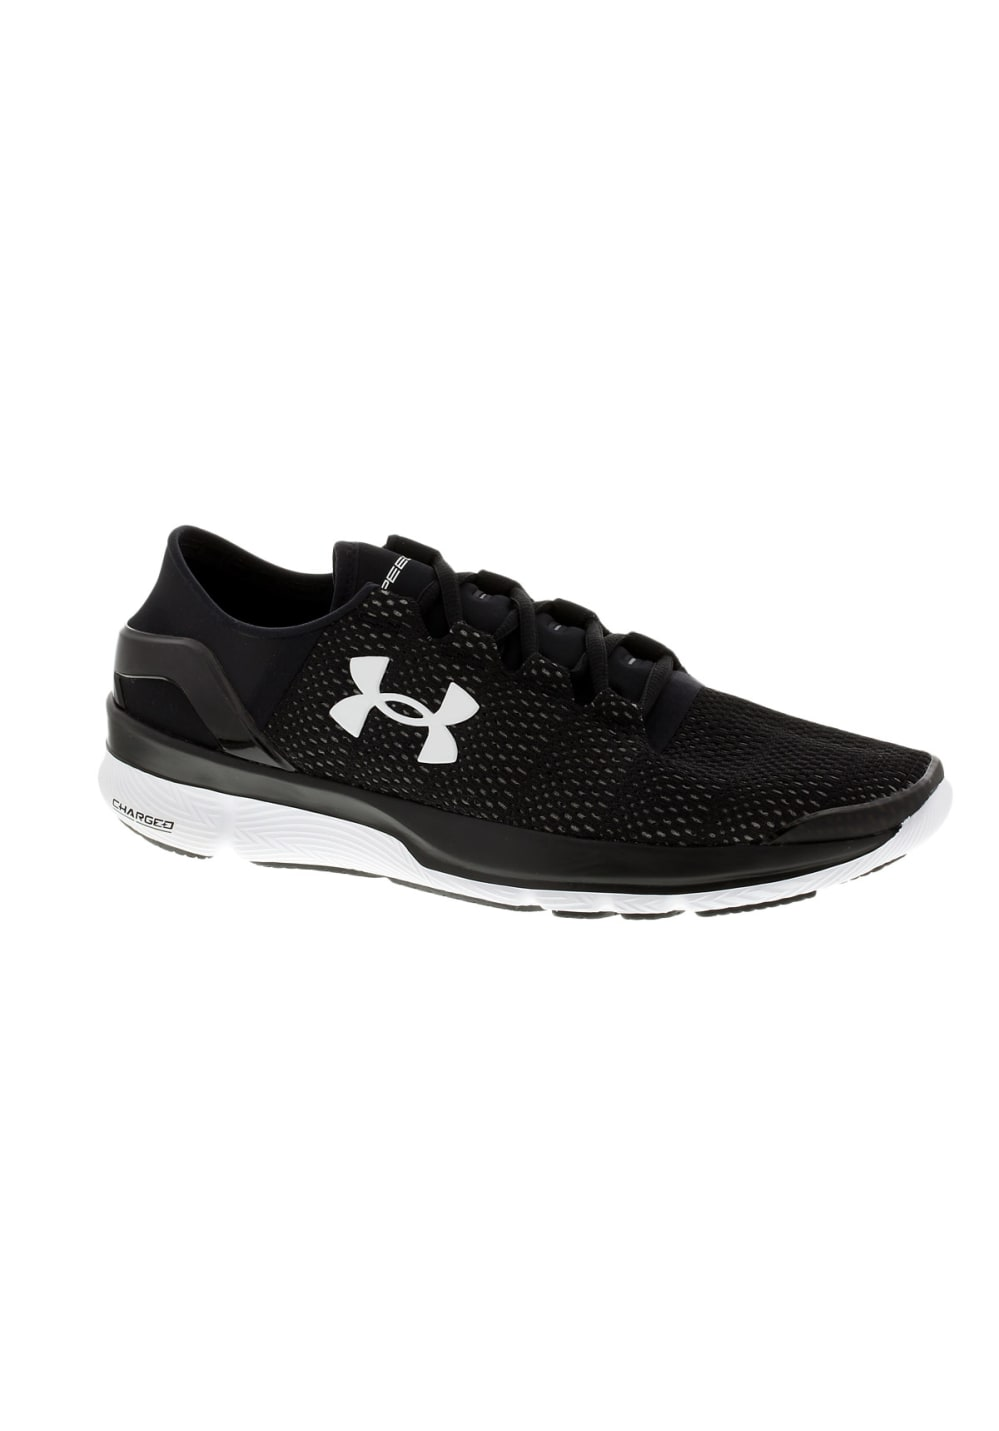 uk availability 6f044 7fee3 Under Armour Speedform Turbulence - Running shoes for Men - Black